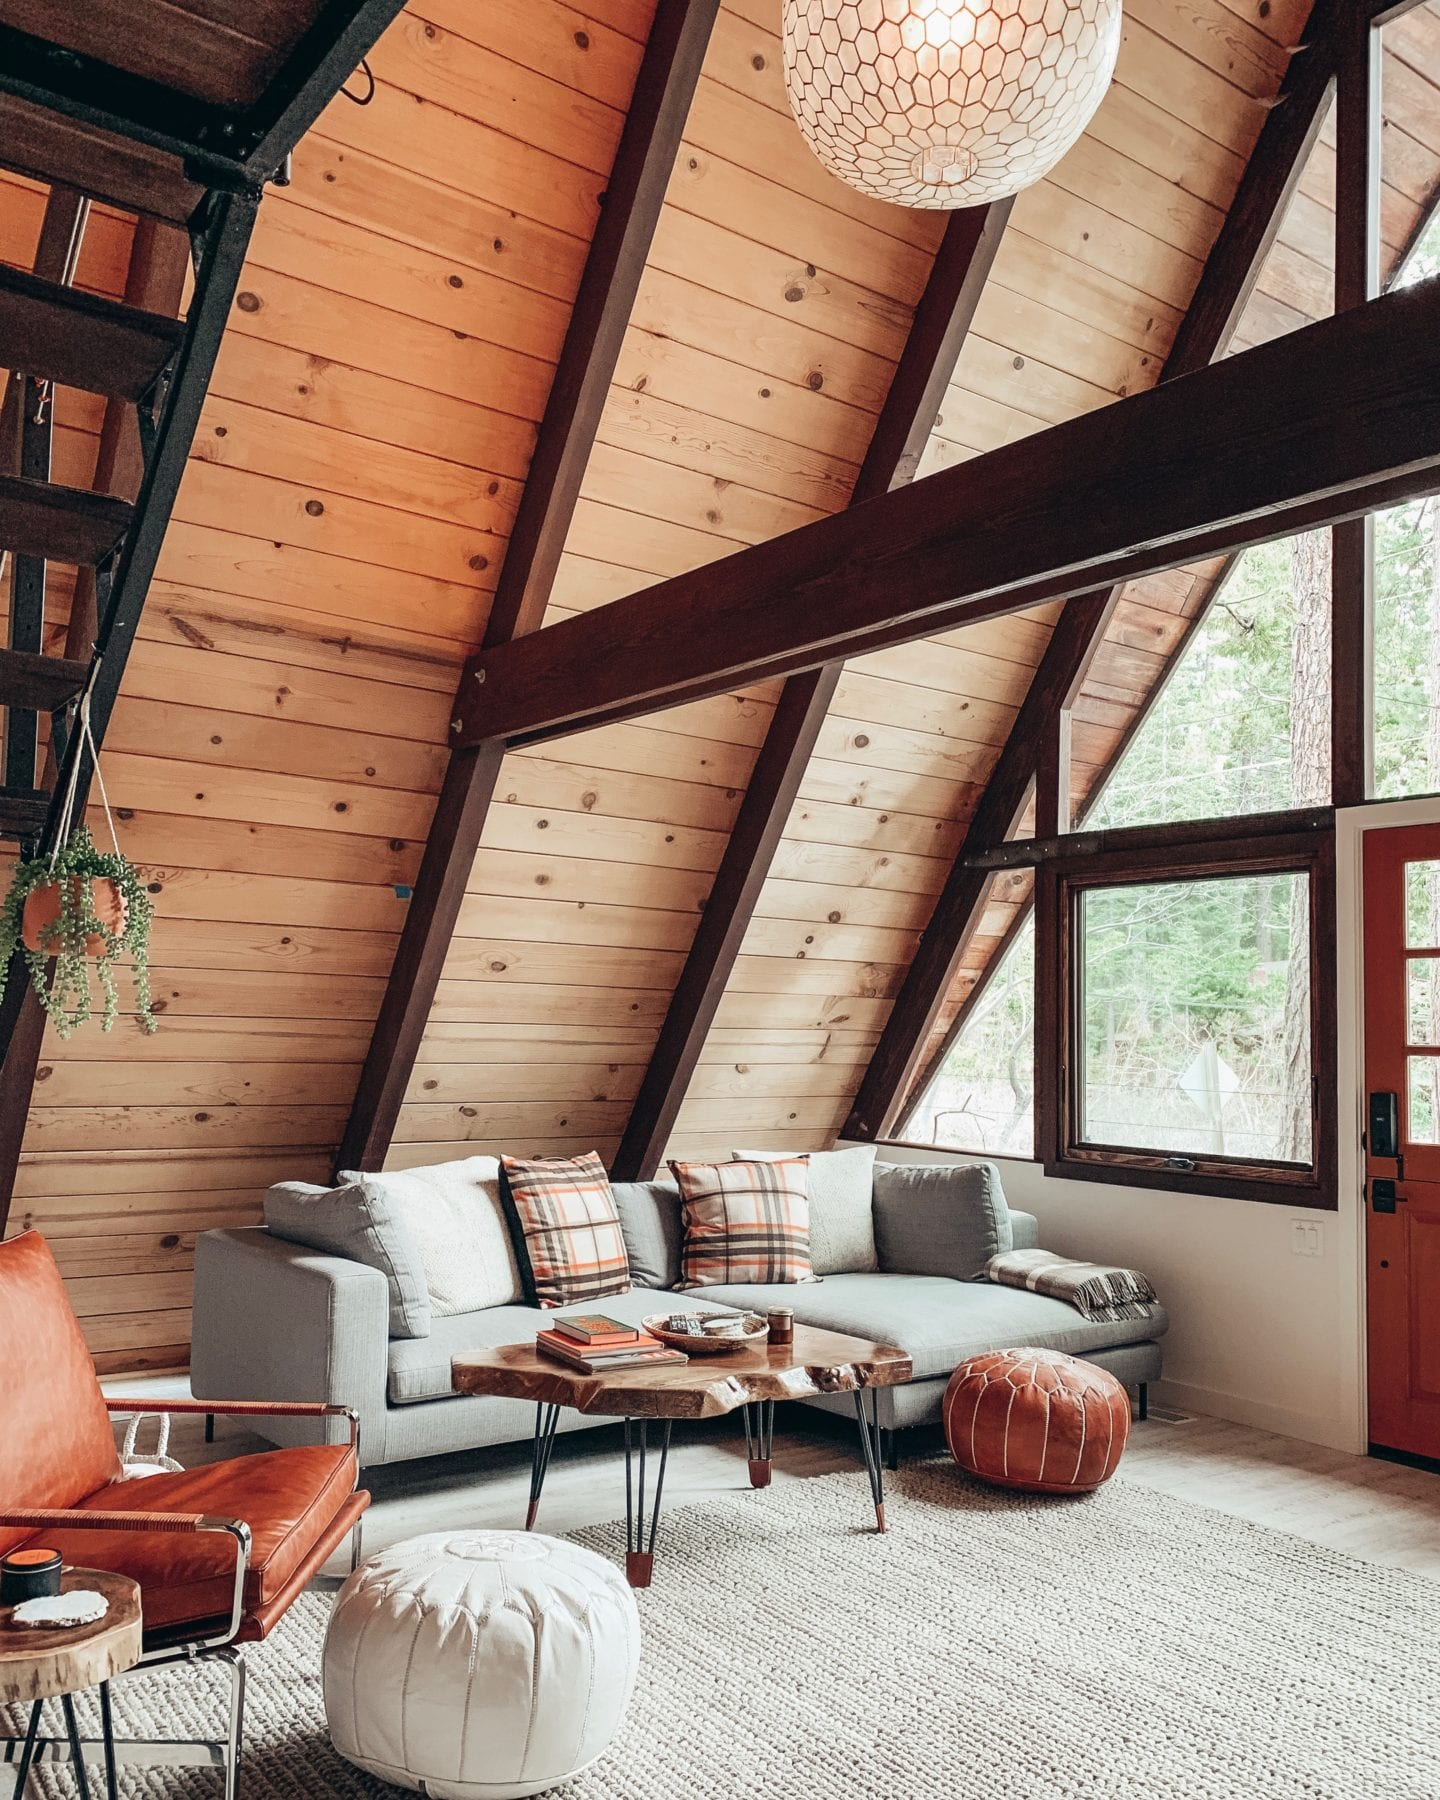 What to Stream on Netflix During Covid 19 by popular San Francisco lifestyle blog, Just Add Glam: image of a A Frame cabin interior with a tan braided rug, leather arm chair, honeycomb pendant light, grey sectional couch, and leather poufs.